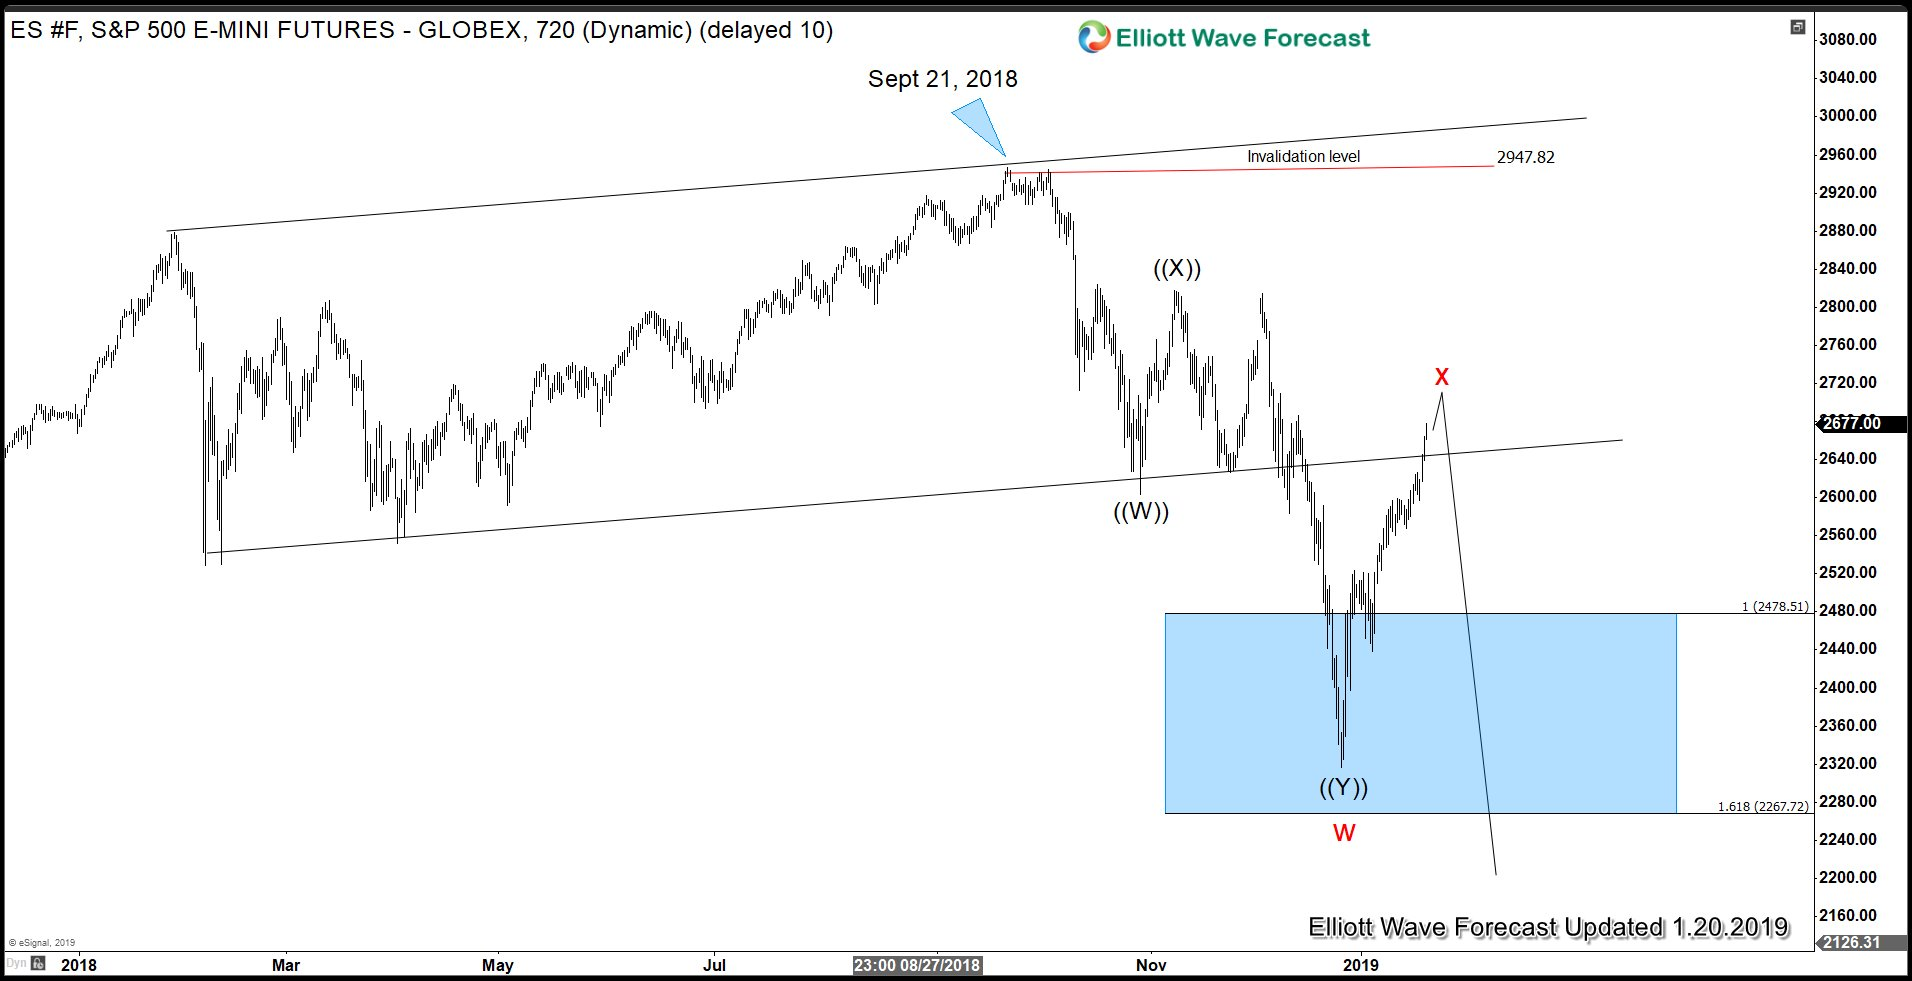 S&P 500 E-Mini Futures Elliott Wave chart should slow down the rally